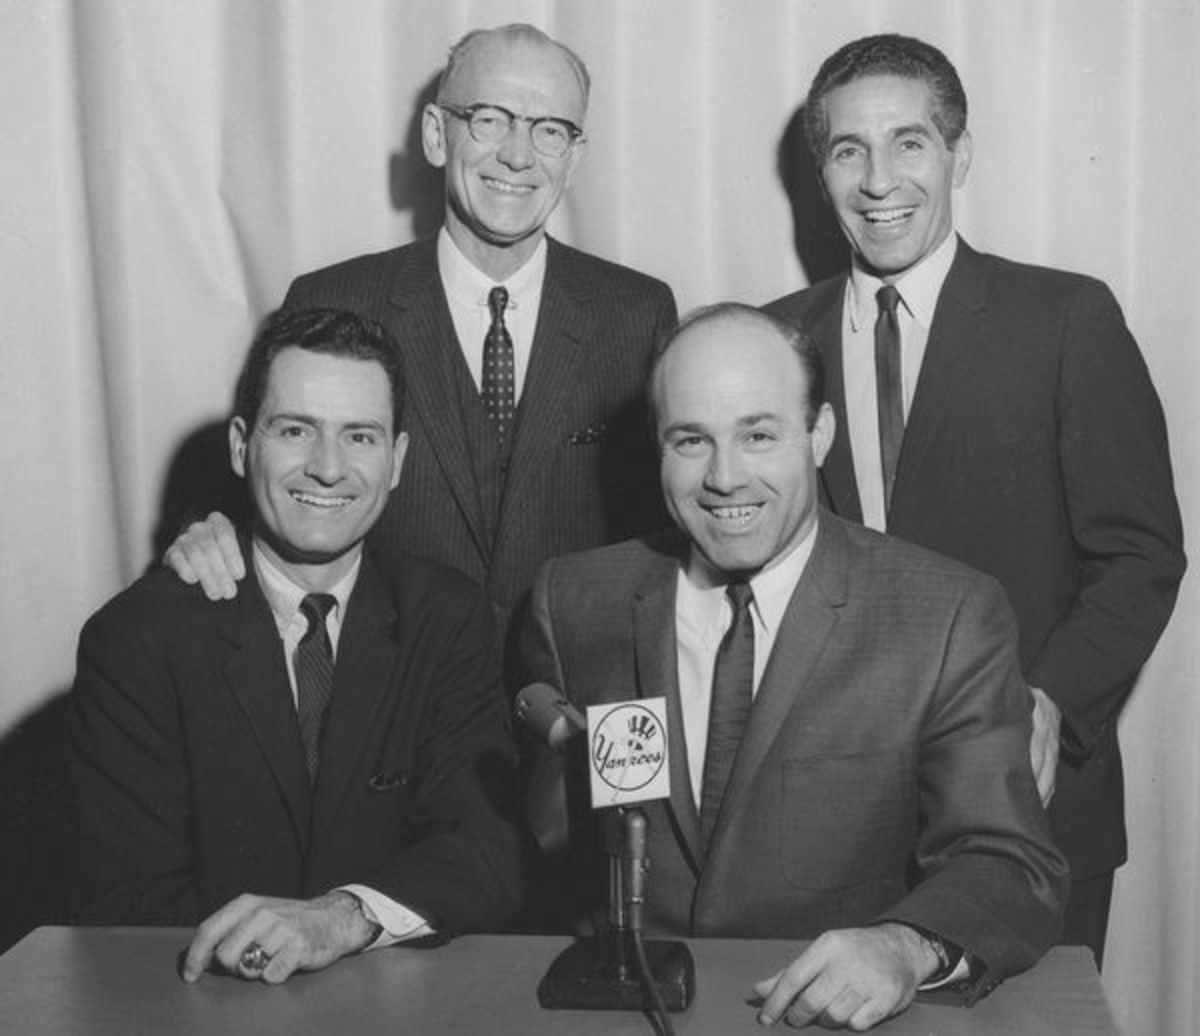 In the booth:  Front Row L-R: Jerry Coleman and Joe Garagiola. Back row L-R: Red Barber and Phil Rizzuto.